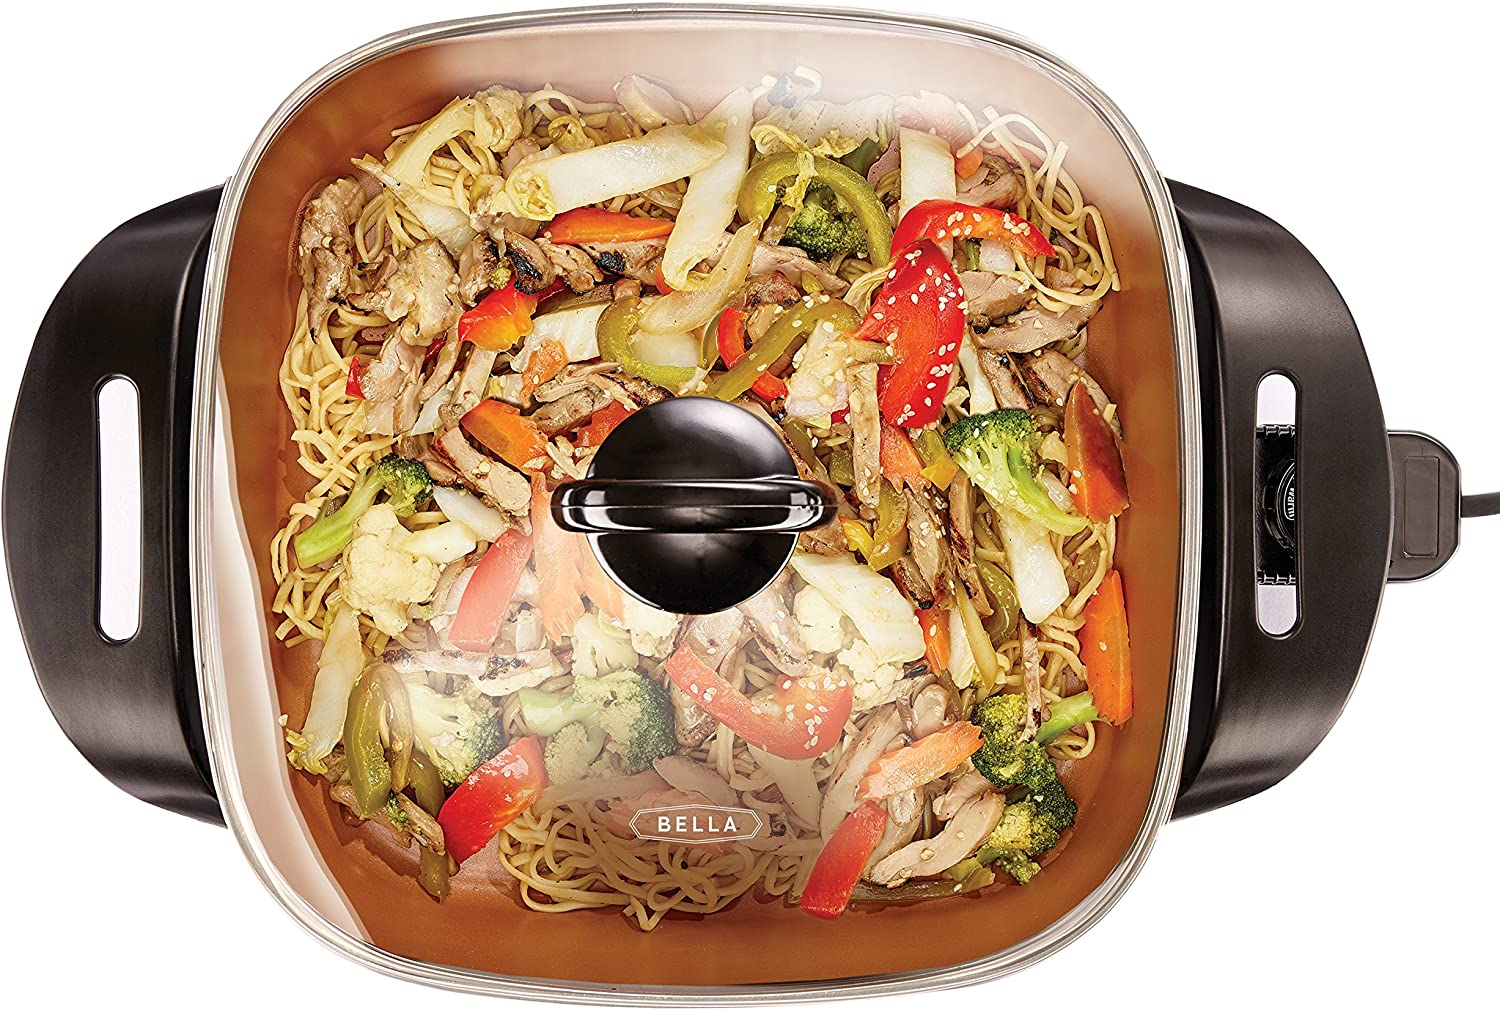 BELLA (14607) Electric Skillet, 12